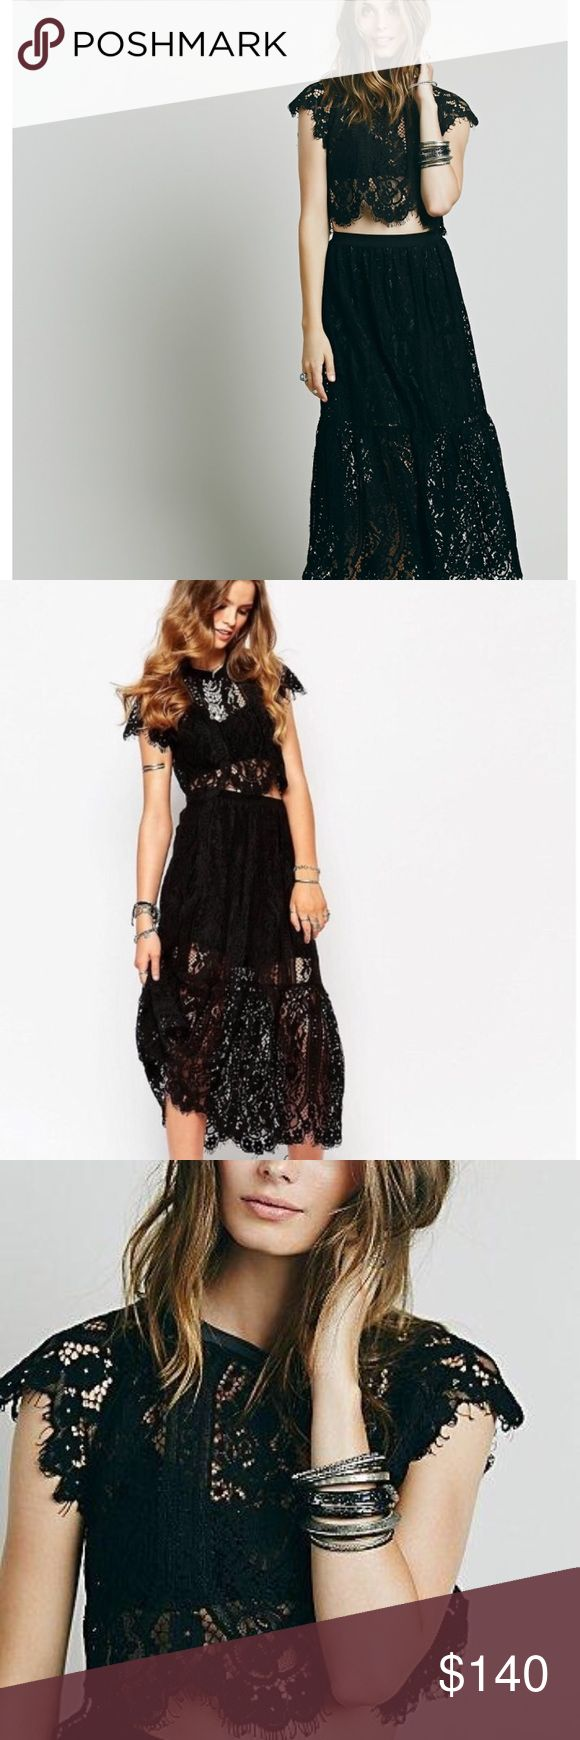 Free People Pocket Full of Posies Set Free people lace top and skirt set. Size 4. Delicate sheer lace crop top set with rounded neck and scalloped trim. Drop waist maxi skirt. Lined with half slip. Sold out style online. Last model photo taken from free people gallery. Free People Dresses Maxi